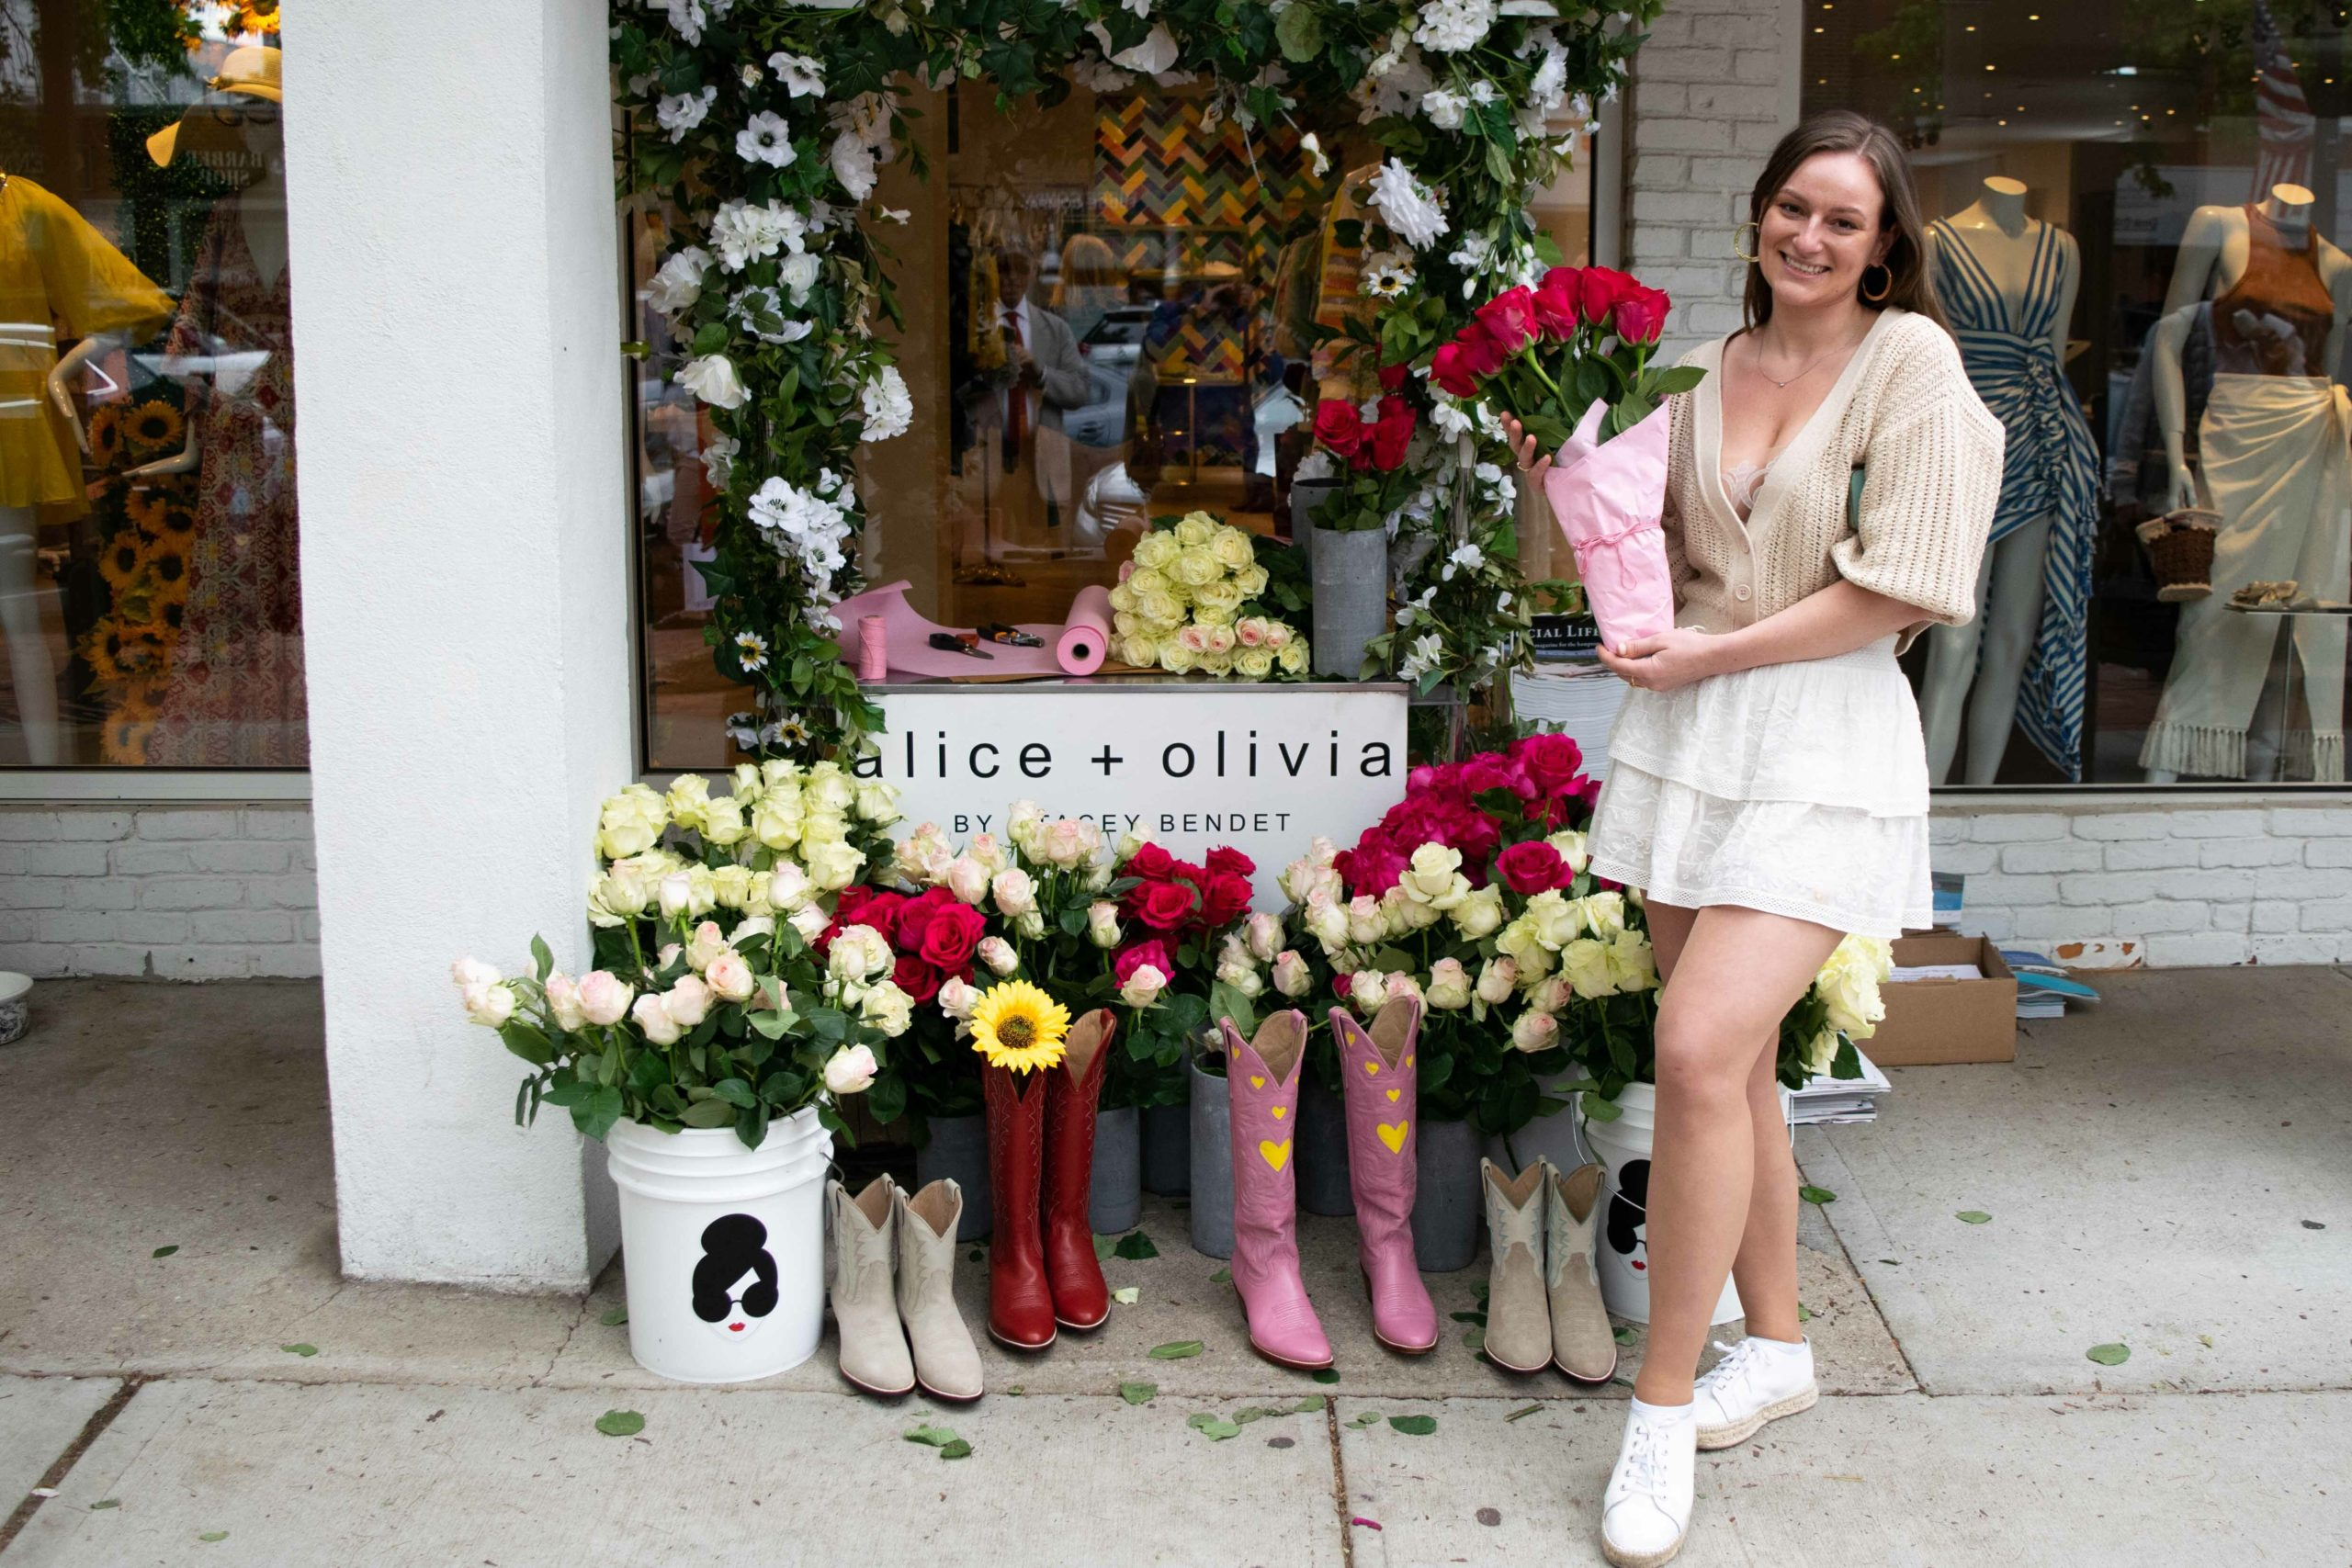 Alice & Olivia took first place at the first annual Southampton Rose Day event held earlier this month in celebration of the village flower, the rose.